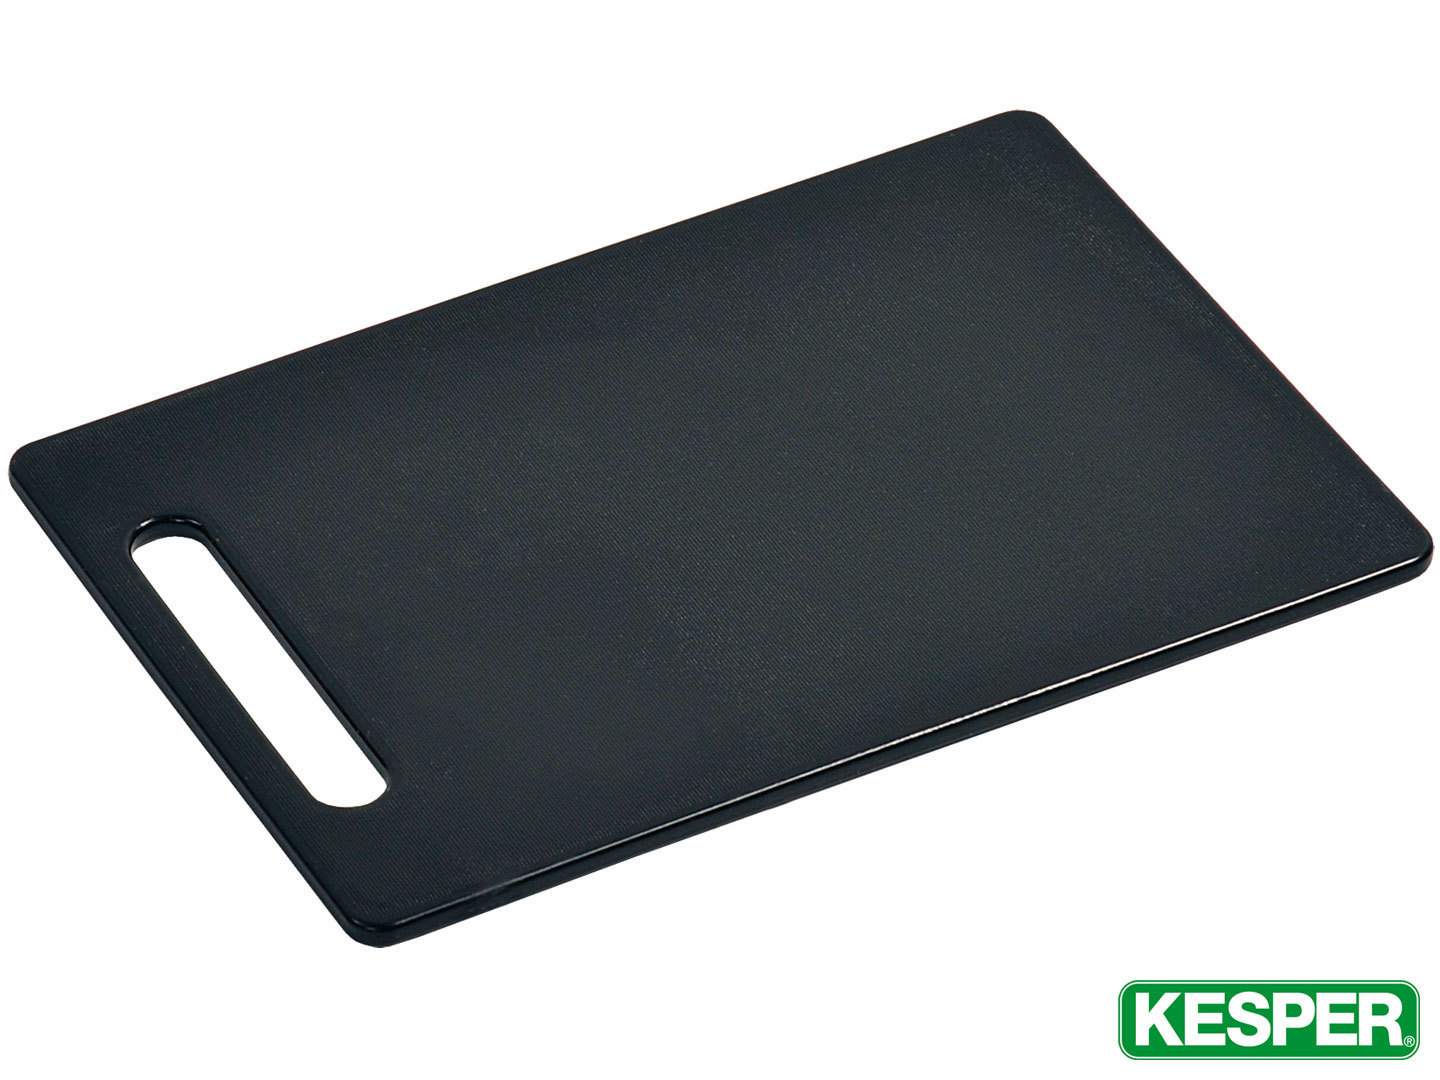 KESPER cutting board 37 x 25 x 0,8 cm black plastic